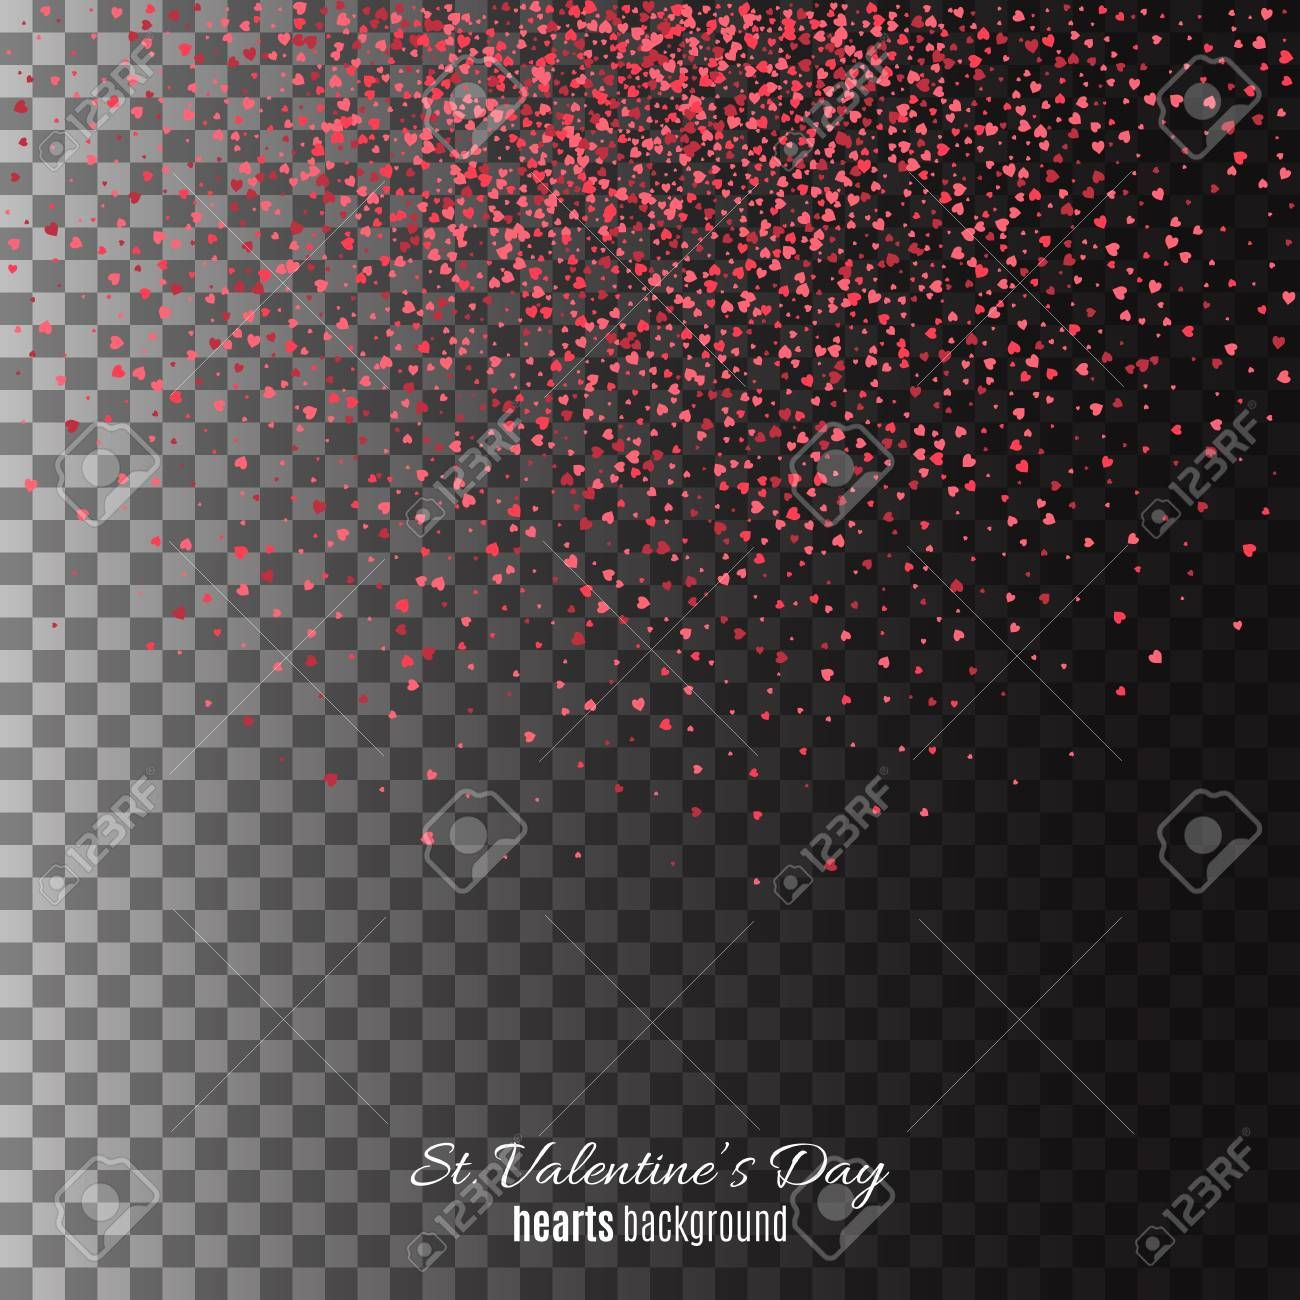 Hearts dust abstract St Valentines Day background Illustration